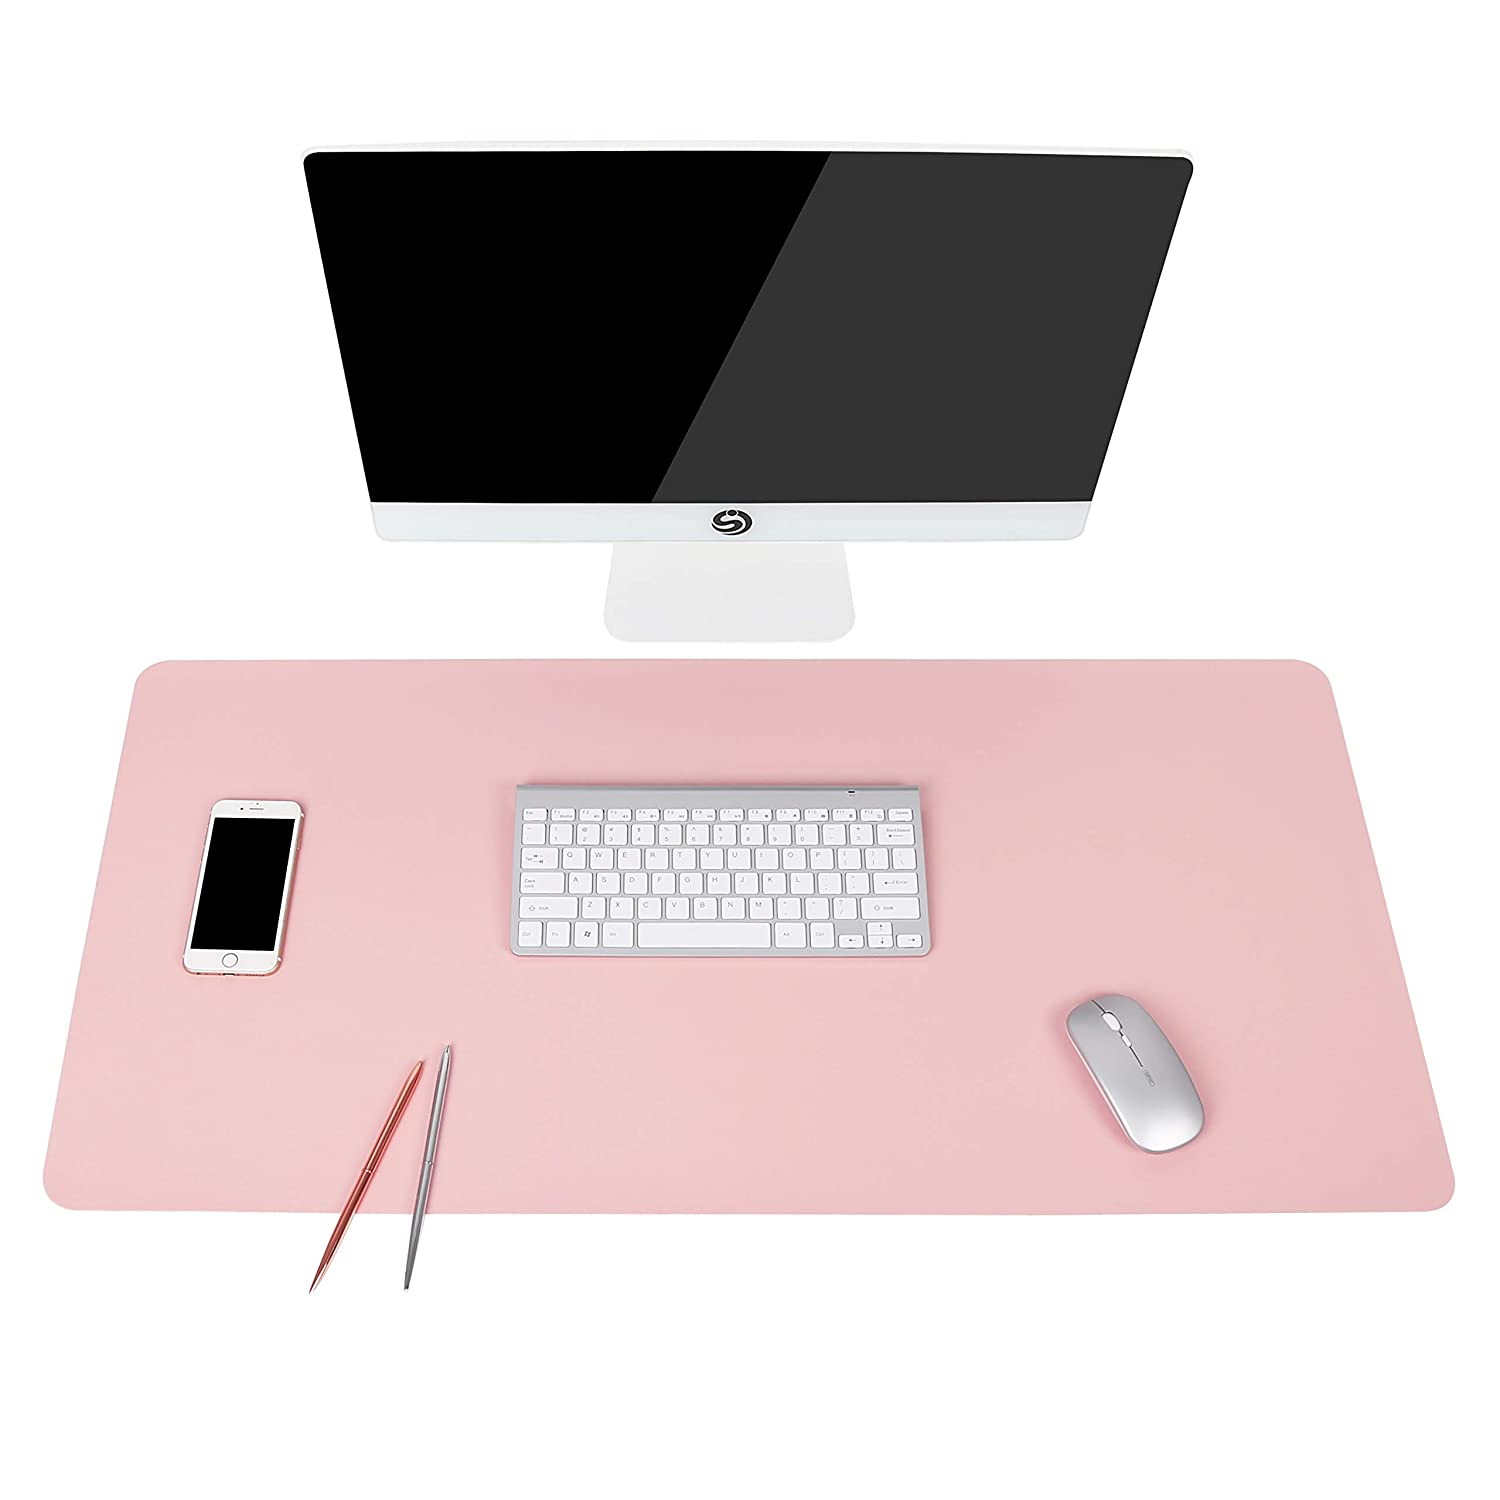 "Writing Desk Pad Protector, YSAGi Anti-Slip Thin Mousepad for Computers,Office Desk Accessories Laptop Waterproof Desk Protector for Office Decor and Home (Pink, 35.4"" x 17"")"